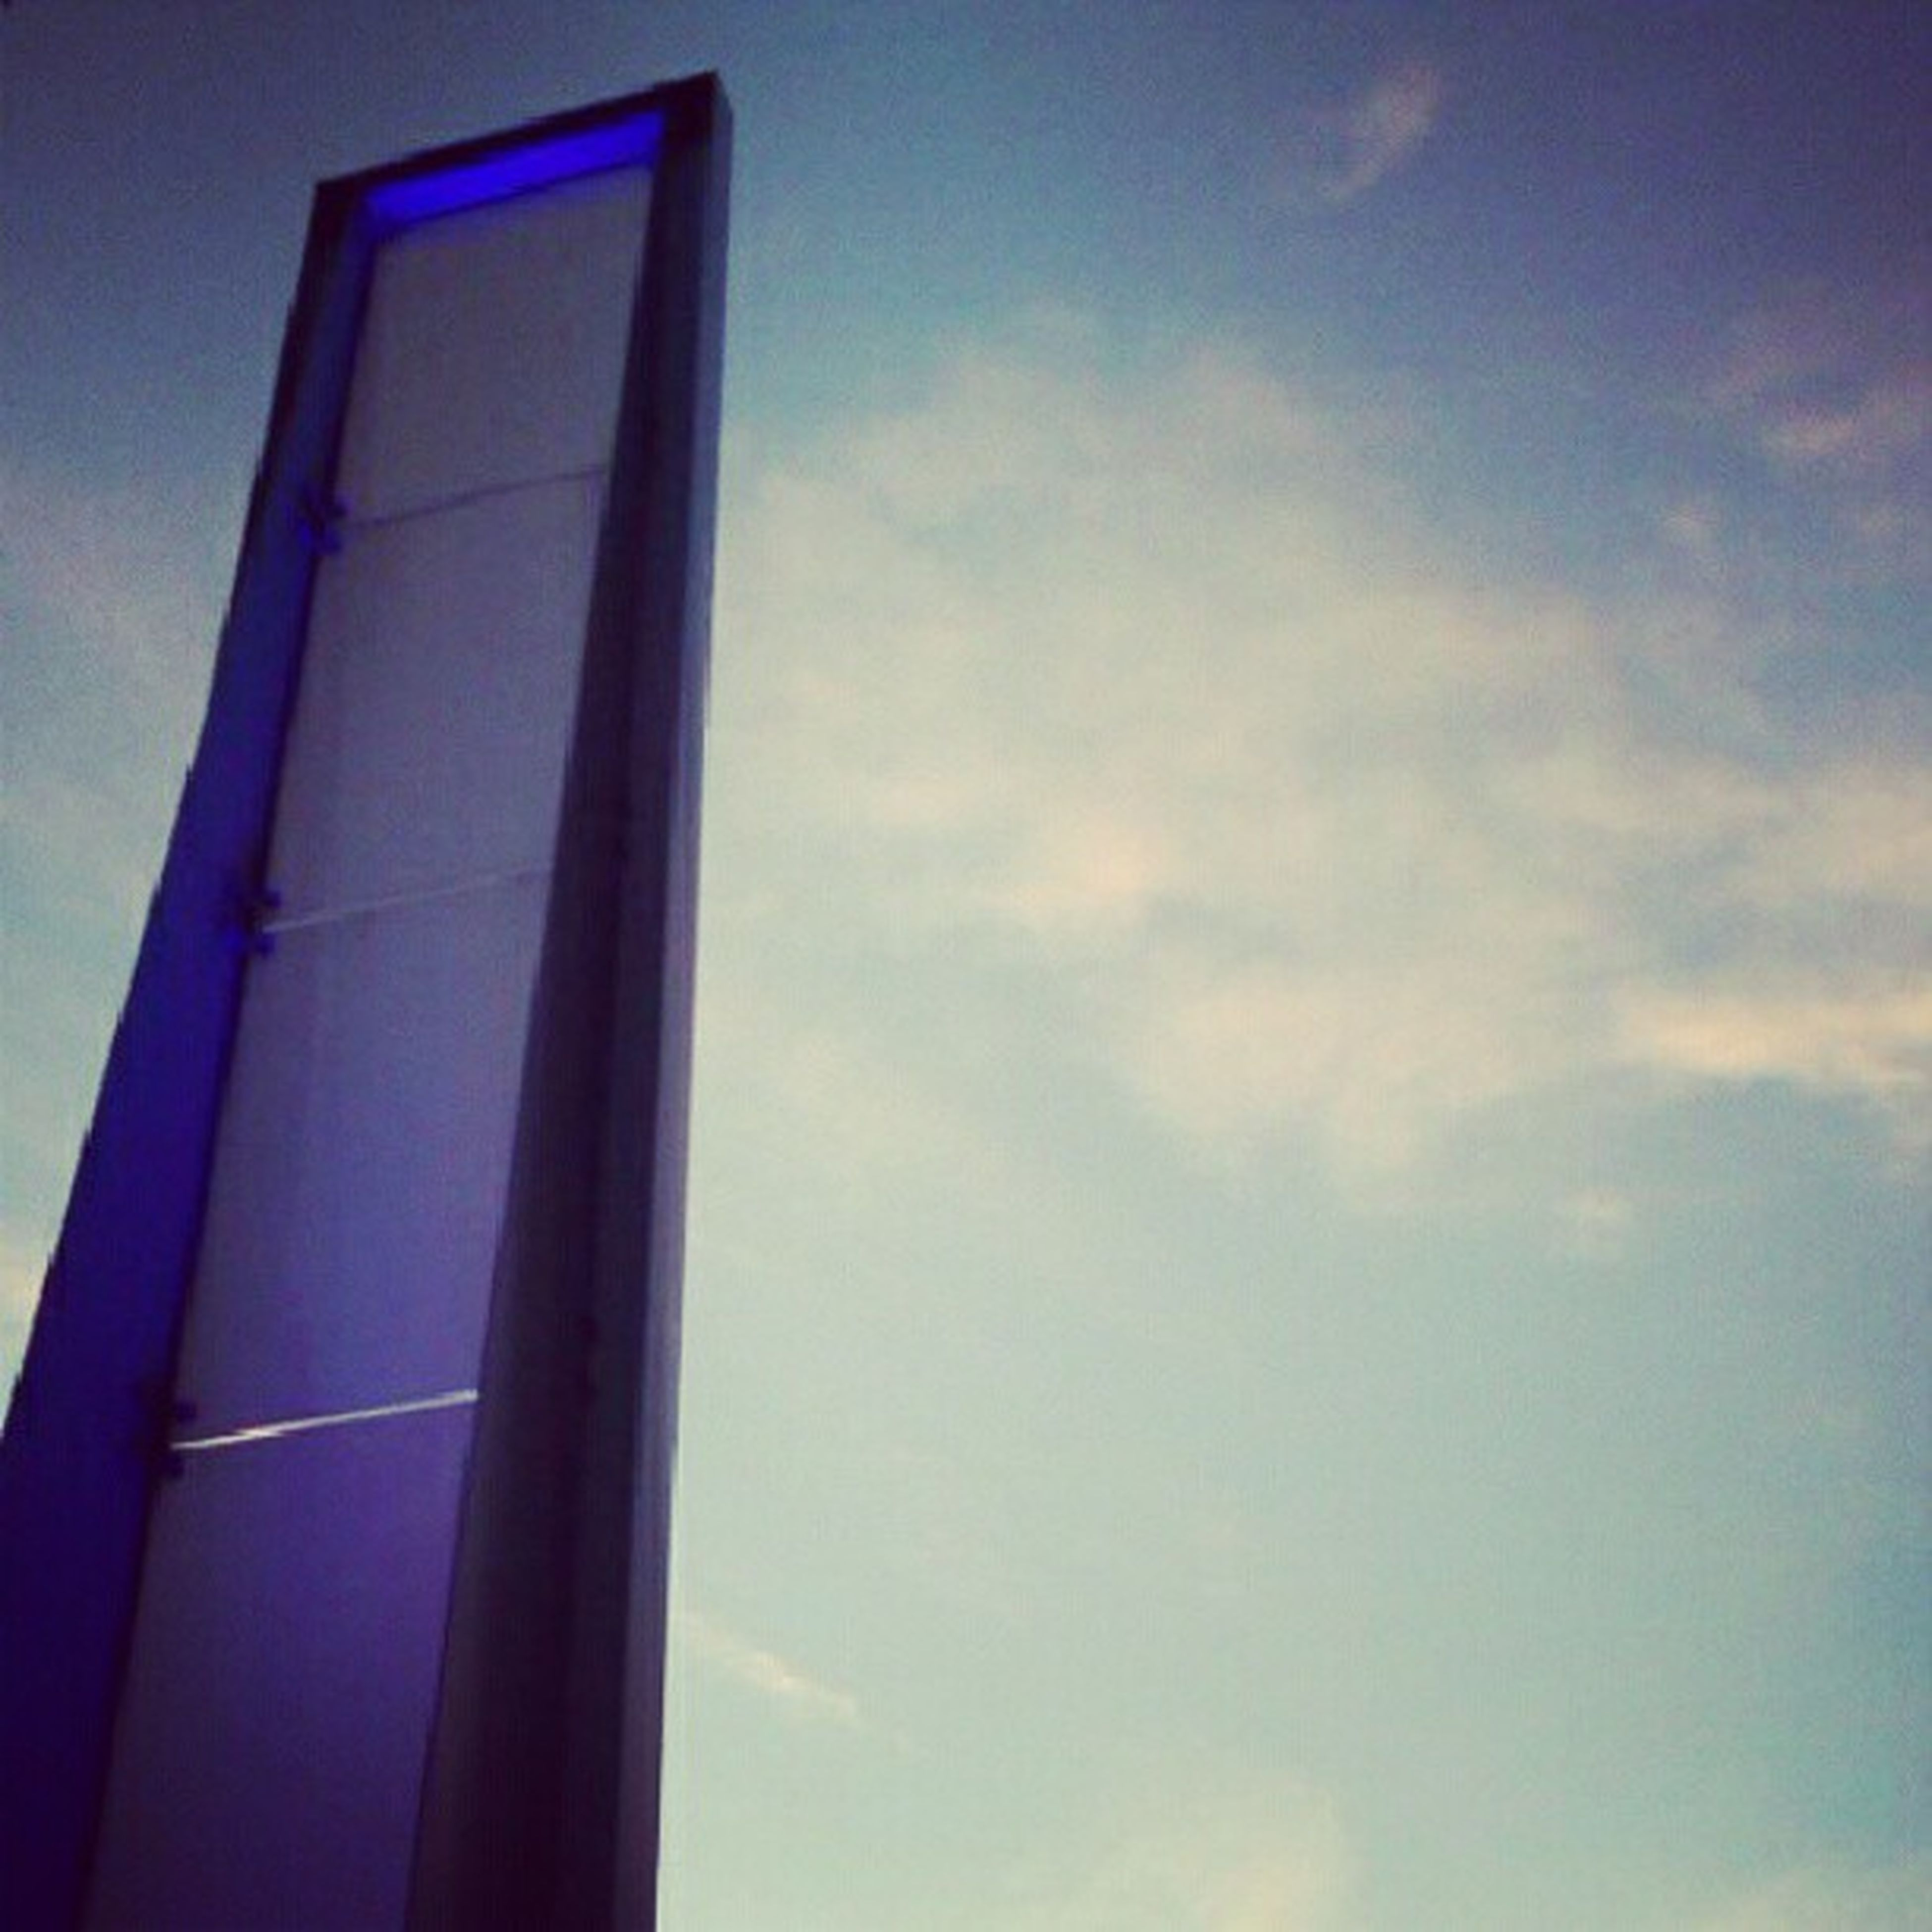 low angle view, sky, architecture, built structure, building exterior, window, cloud - sky, blue, cloud, no people, high section, outdoors, day, building, lighting equipment, cloudy, part of, directly below, sunlight, glass - material